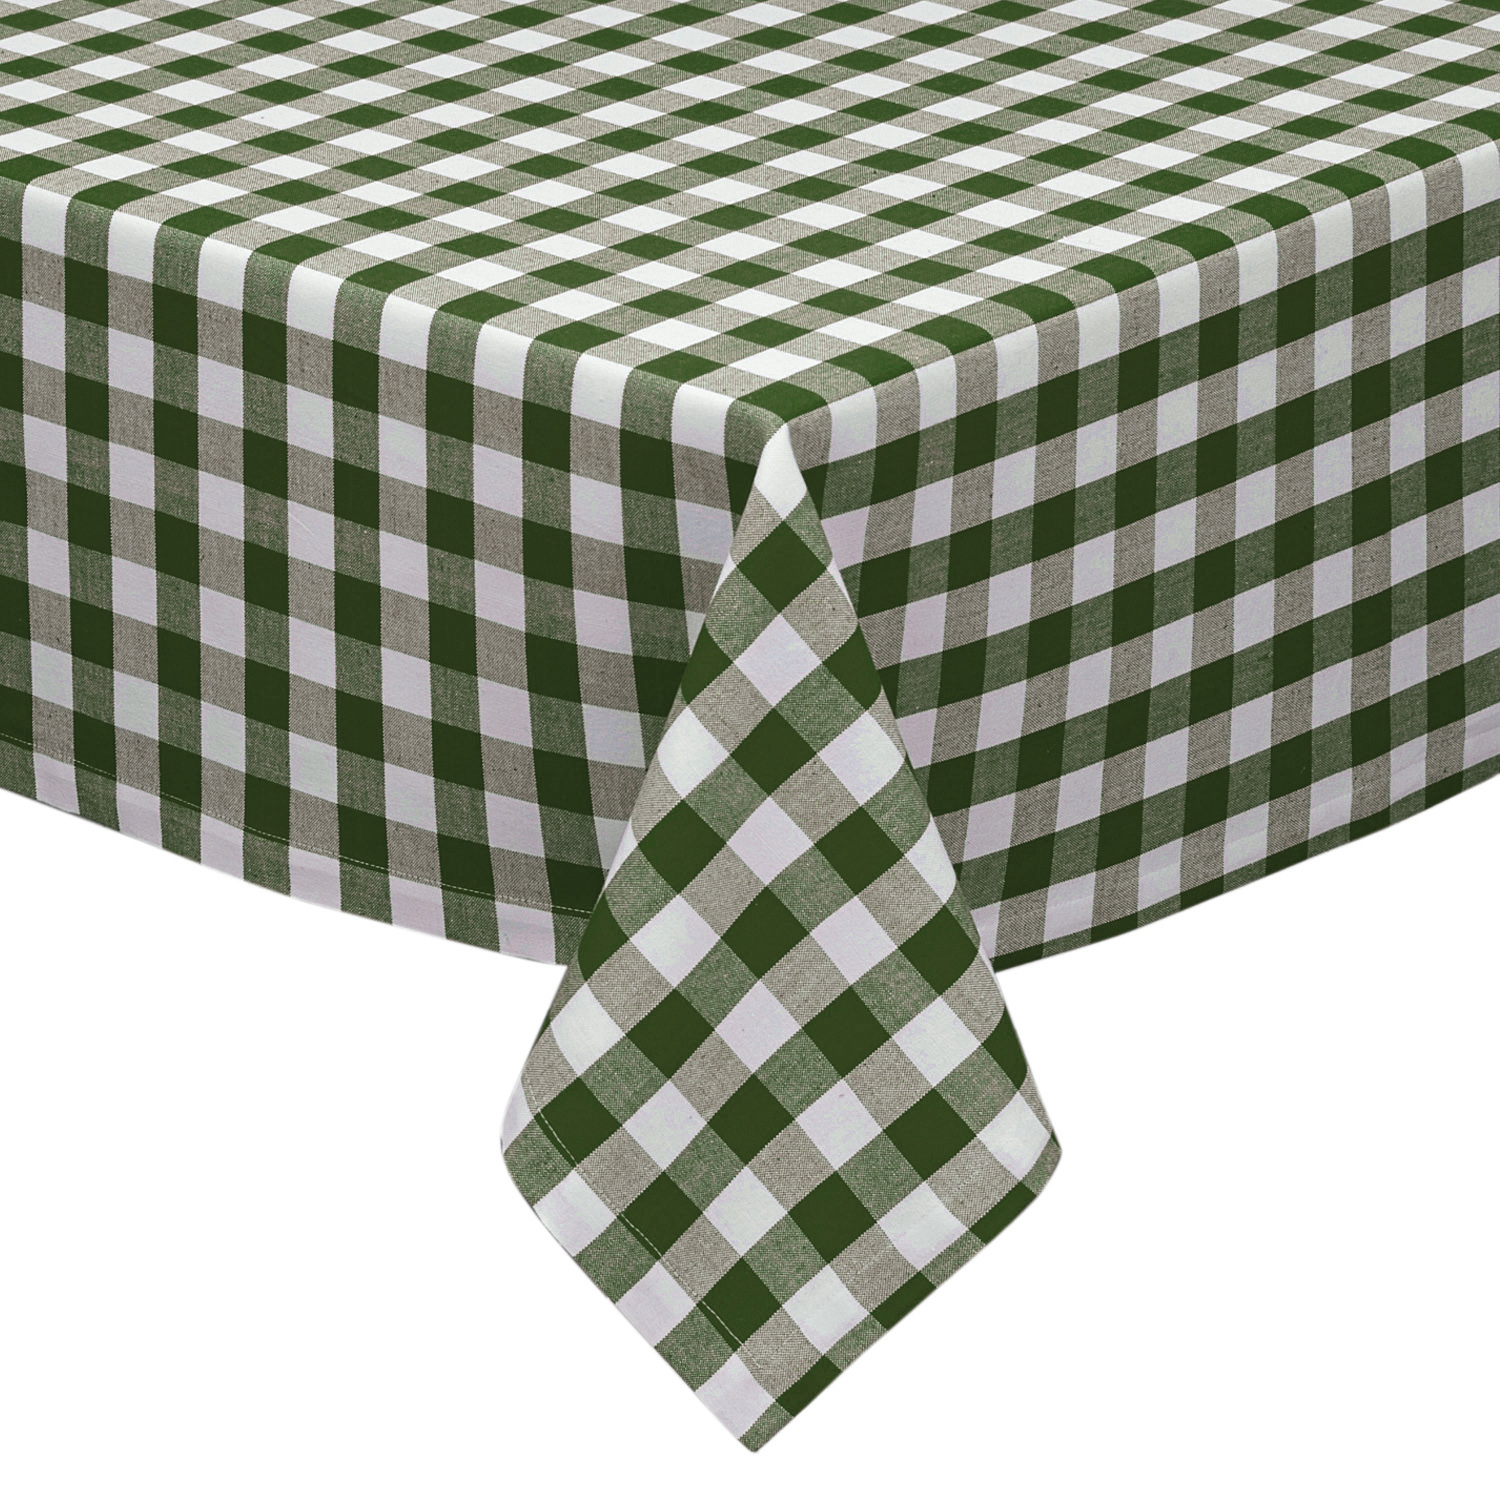 Sage And White Cotton Rich Checkered Kitchen/Dining Room Tablecloth:  Gingham/Plaid Design